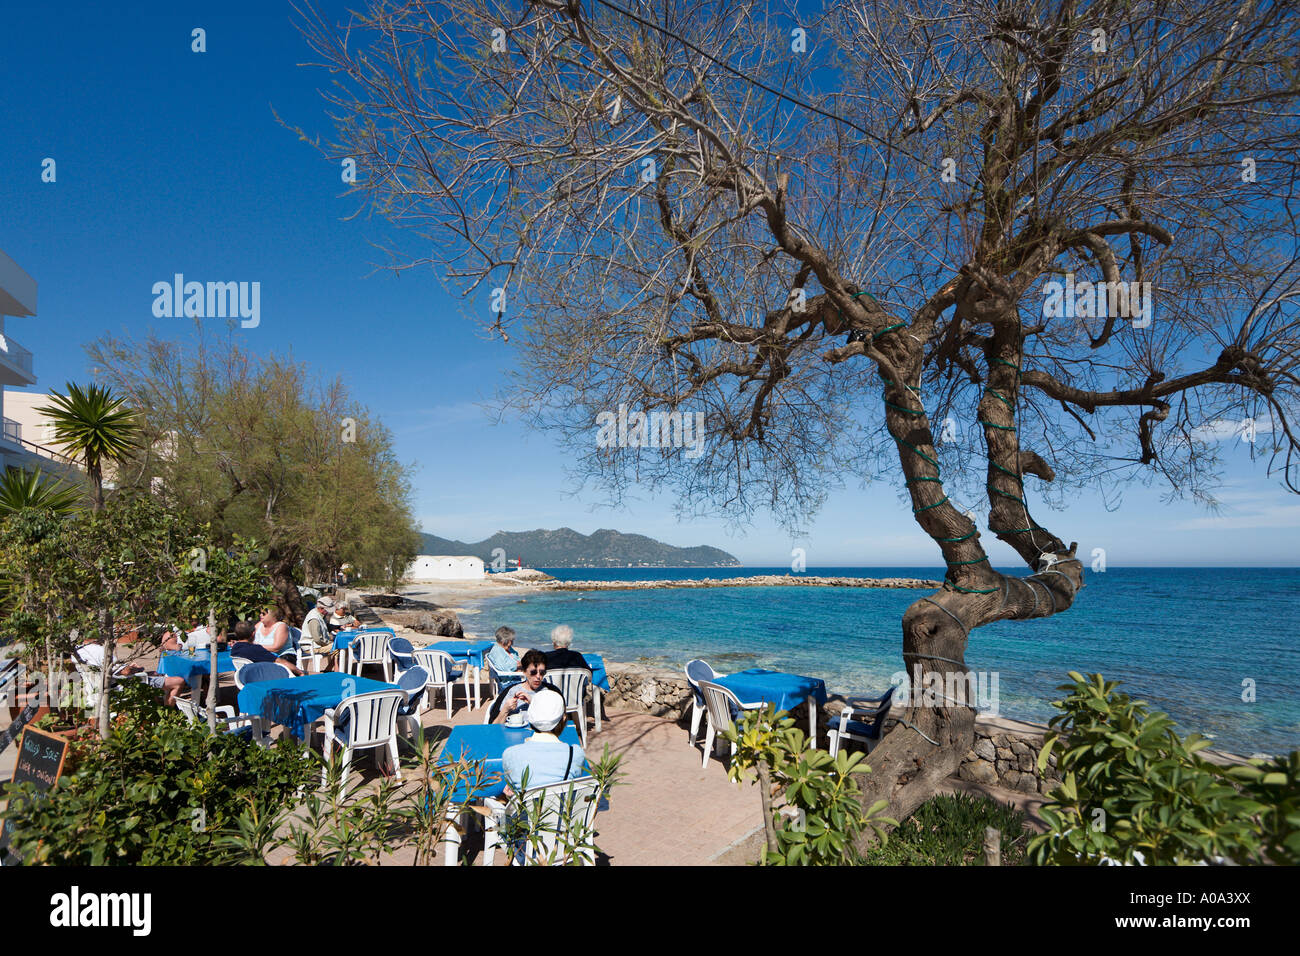 Seafront cafe in the winter season, Cala Bona, Mallorca, Balearic Islands, Spain - Stock Image